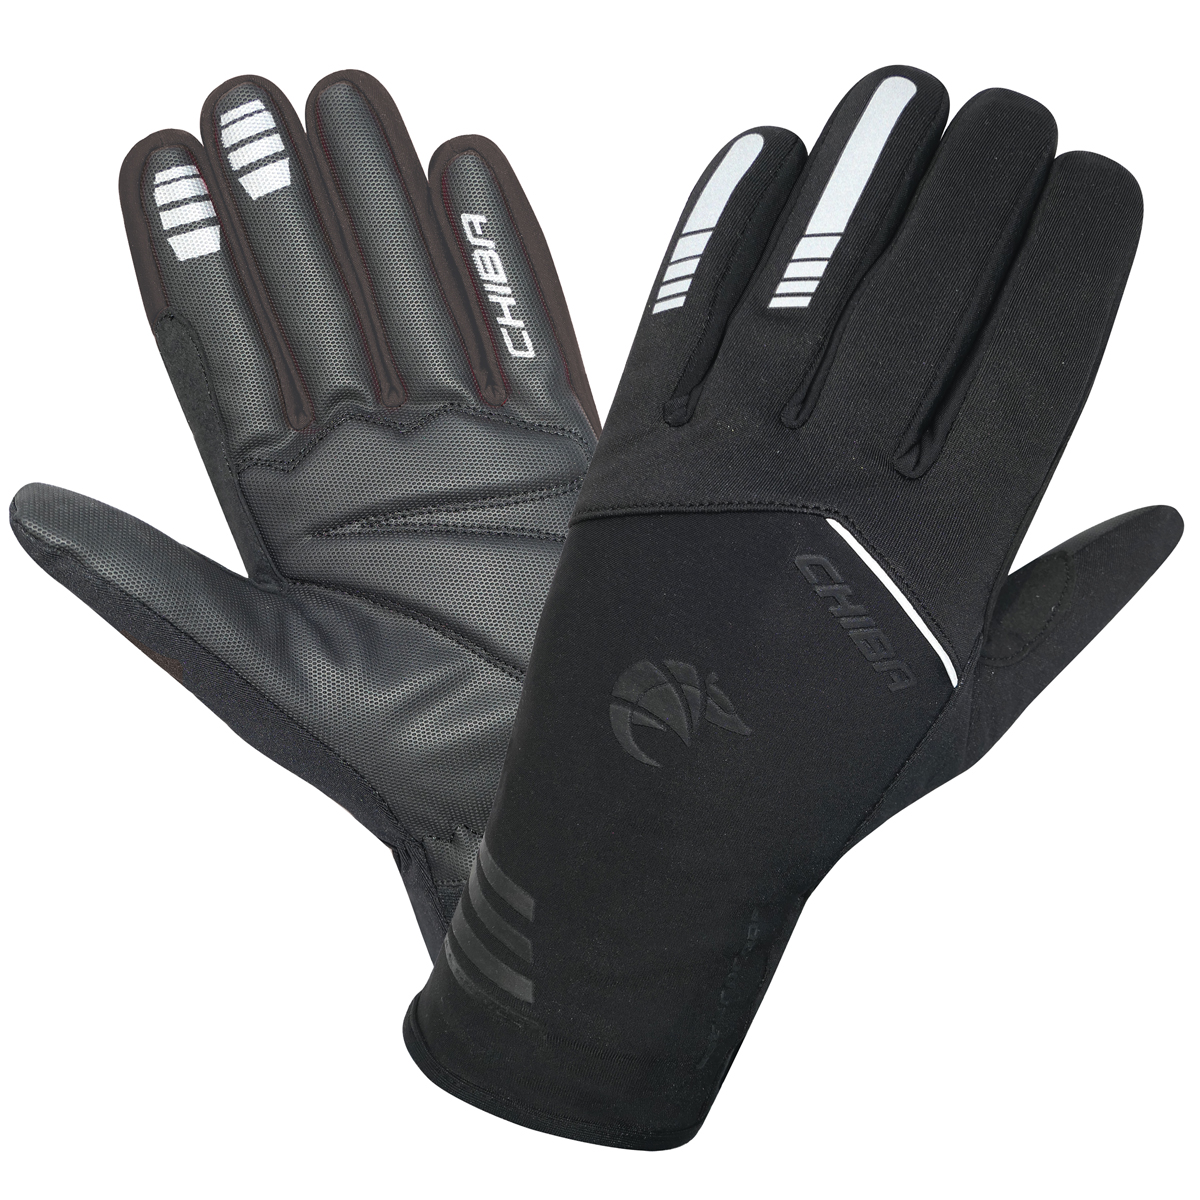 Chiba Cycle Clothing > Gloves & Mitts Chiba 2nd Skin Waterproof & Windprotect Glove